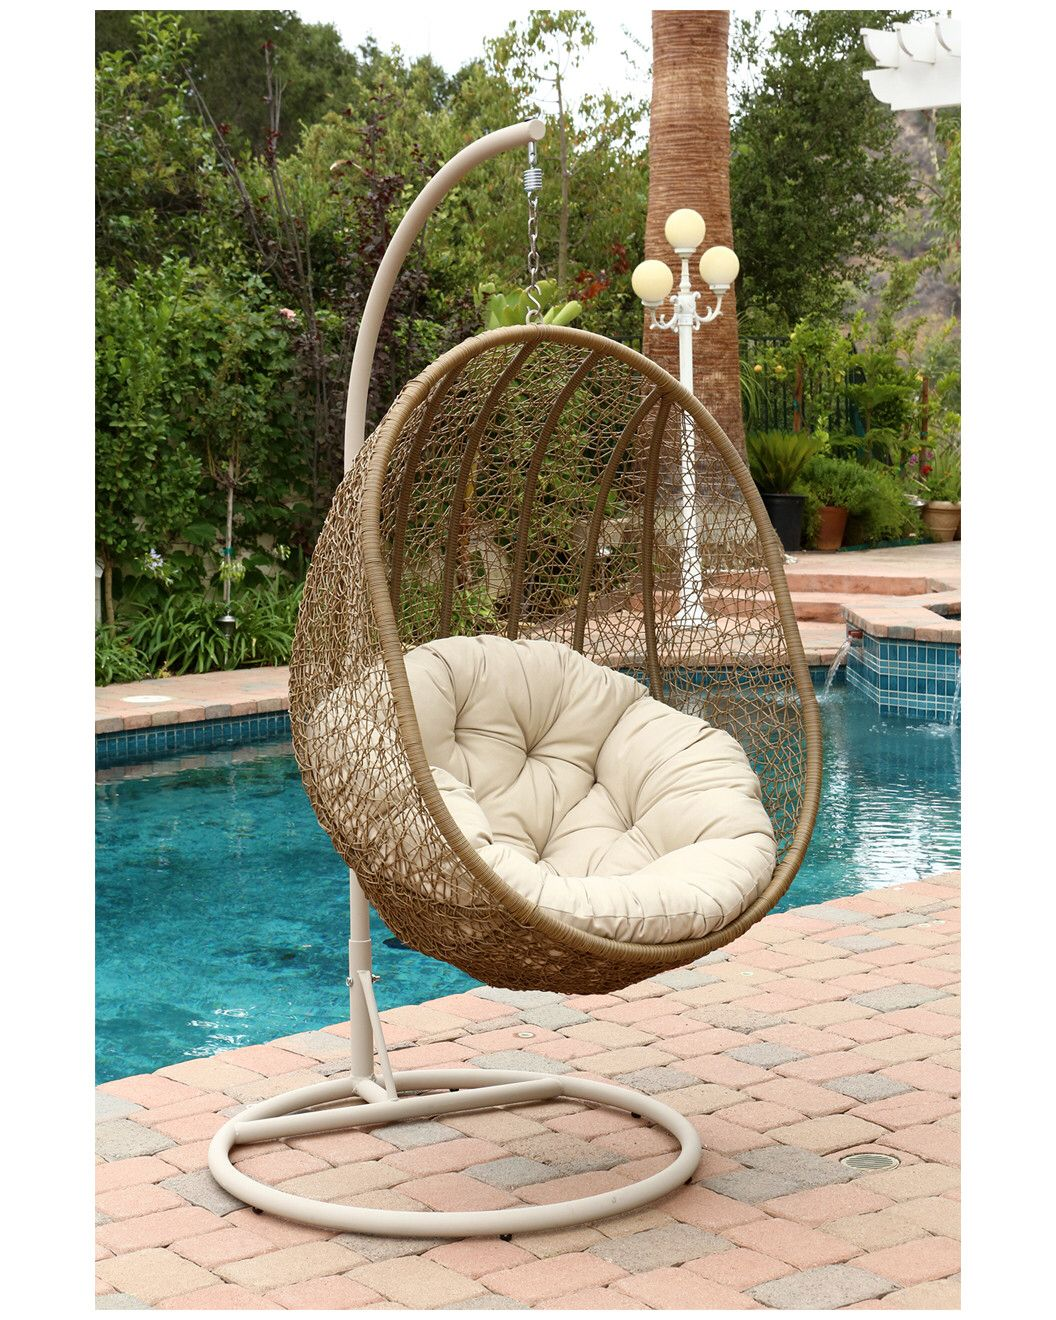 You need to see this kingston outdoor wicker swing chair on rue la